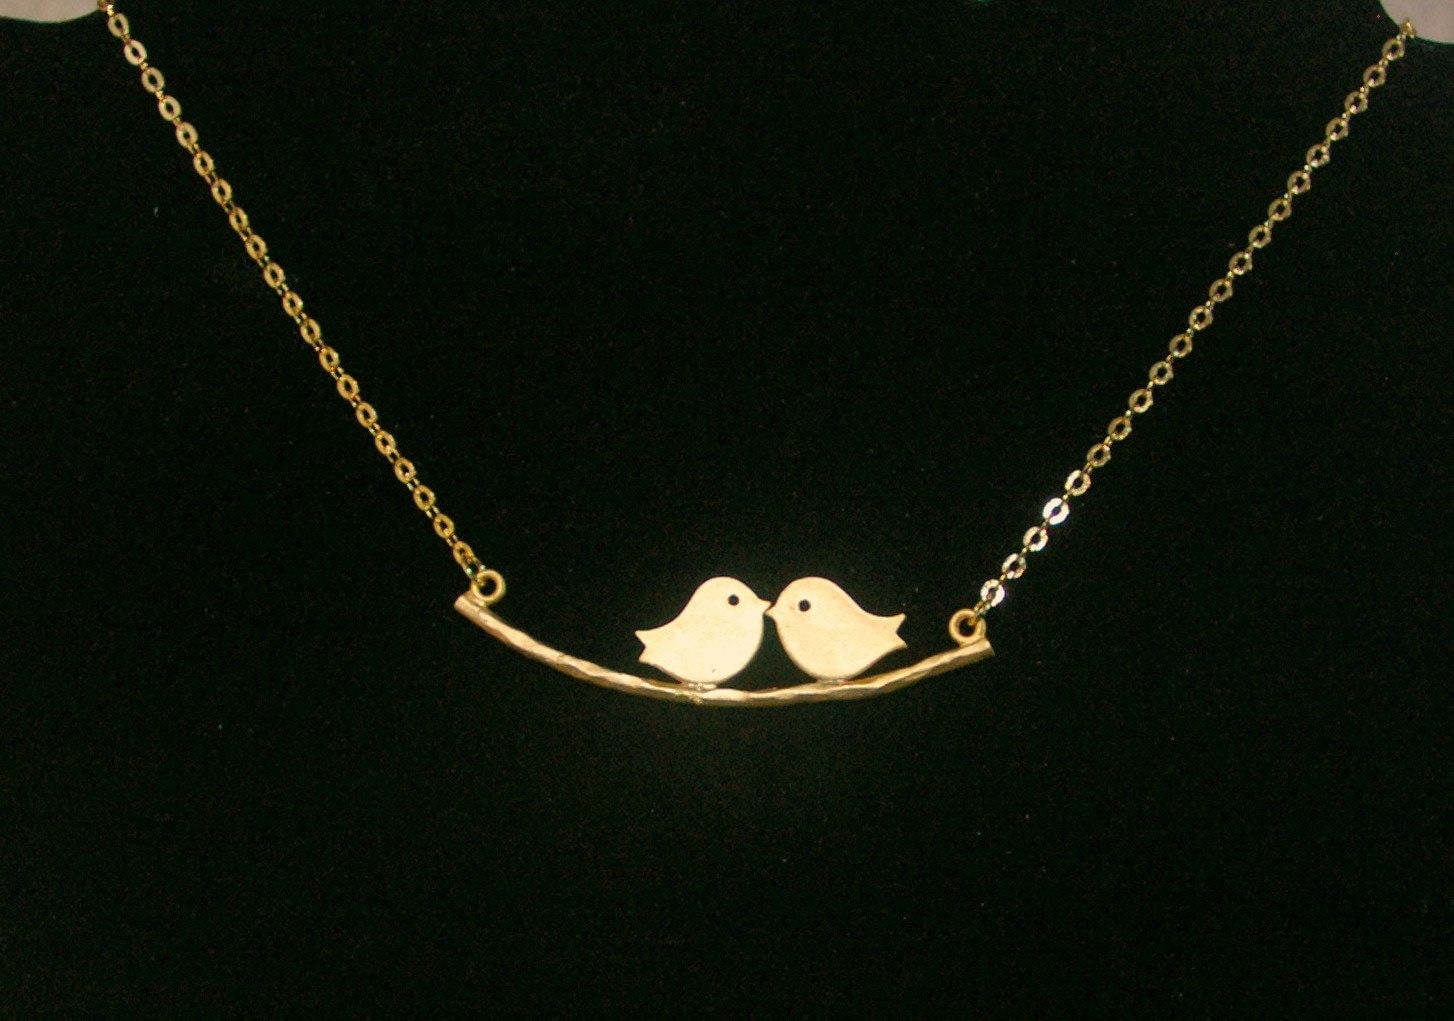 original a notonthehighstreet necklace am free sterling i by silver chupi product com in bird